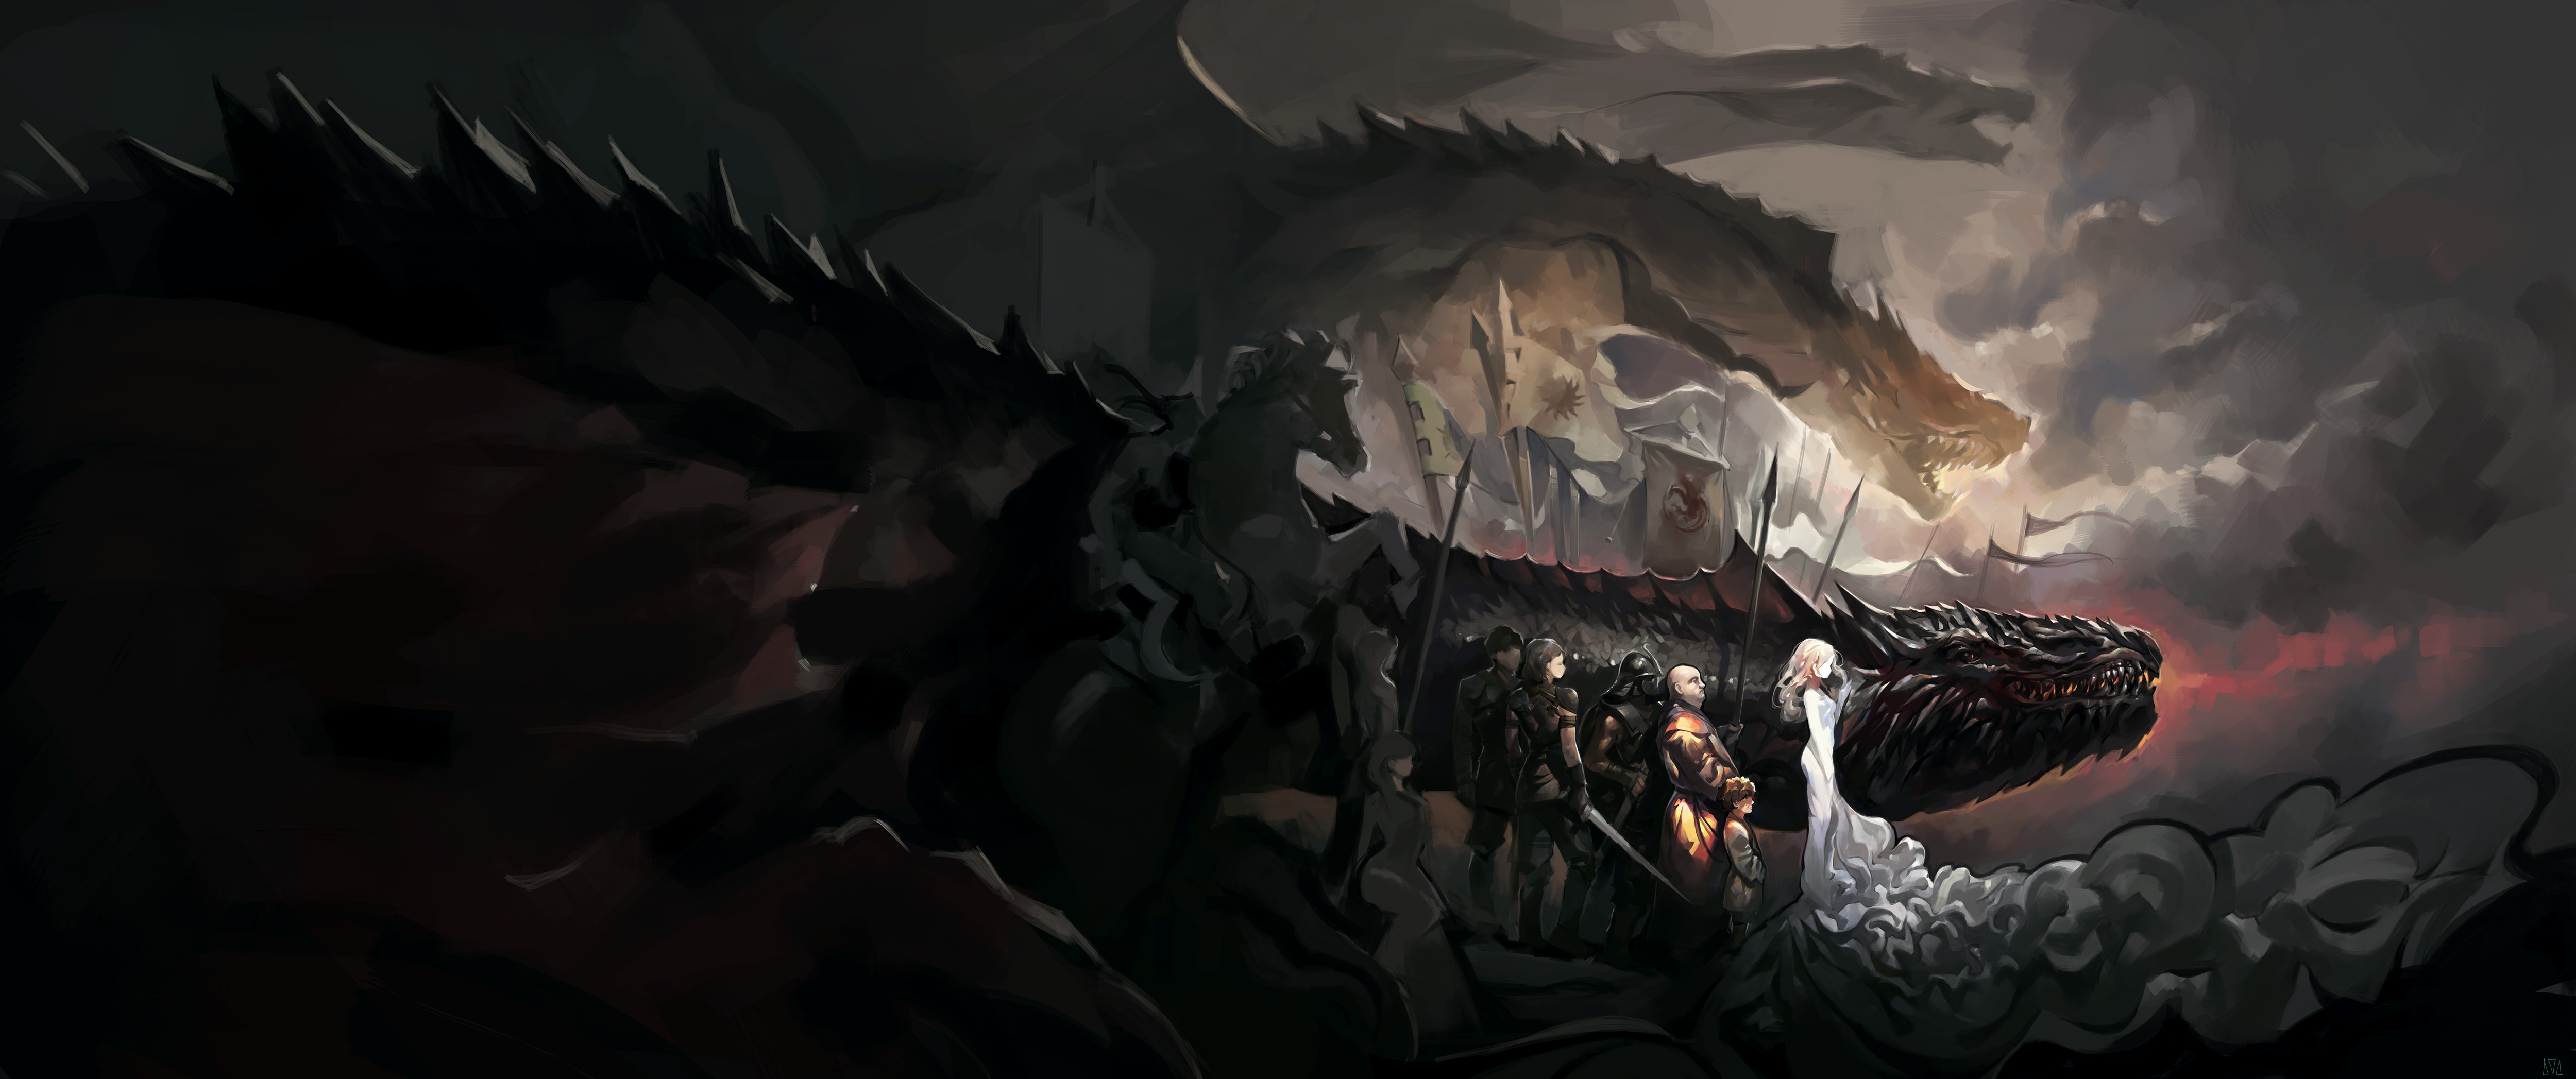 Mother Of Dragons by fkcogus333